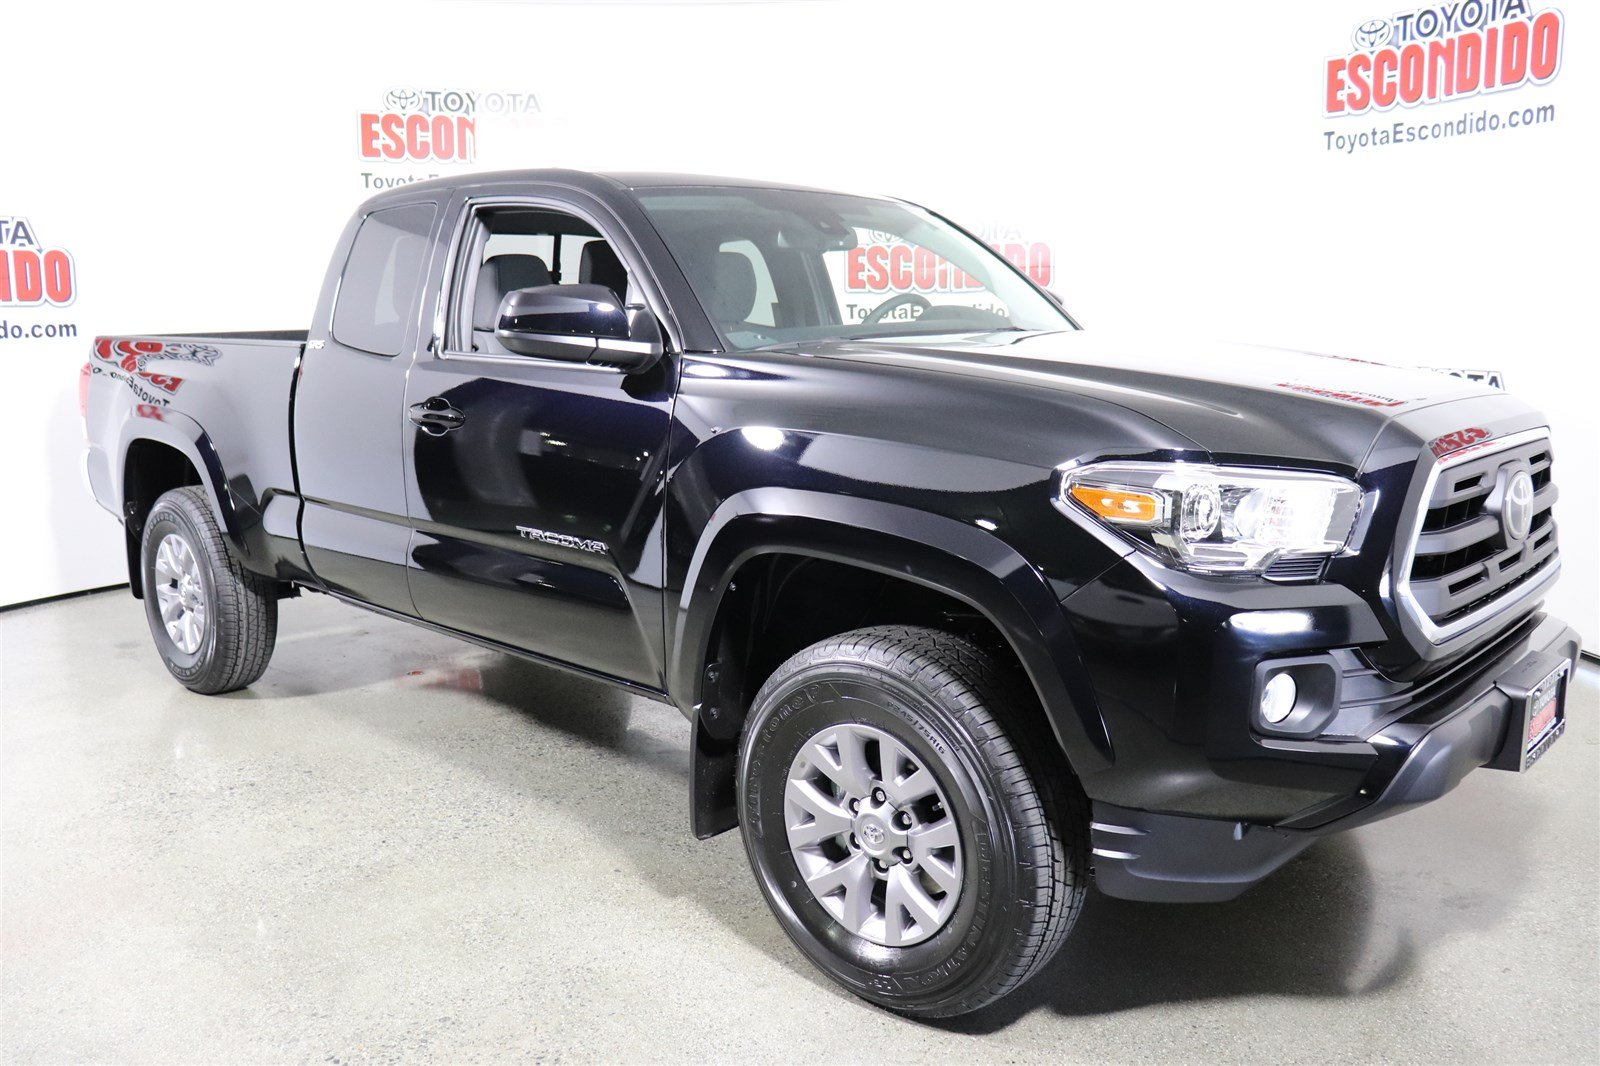 new 2018 toyota tacoma sr5 double cab pickup in escondido 1018806 toyota escondido. Black Bedroom Furniture Sets. Home Design Ideas